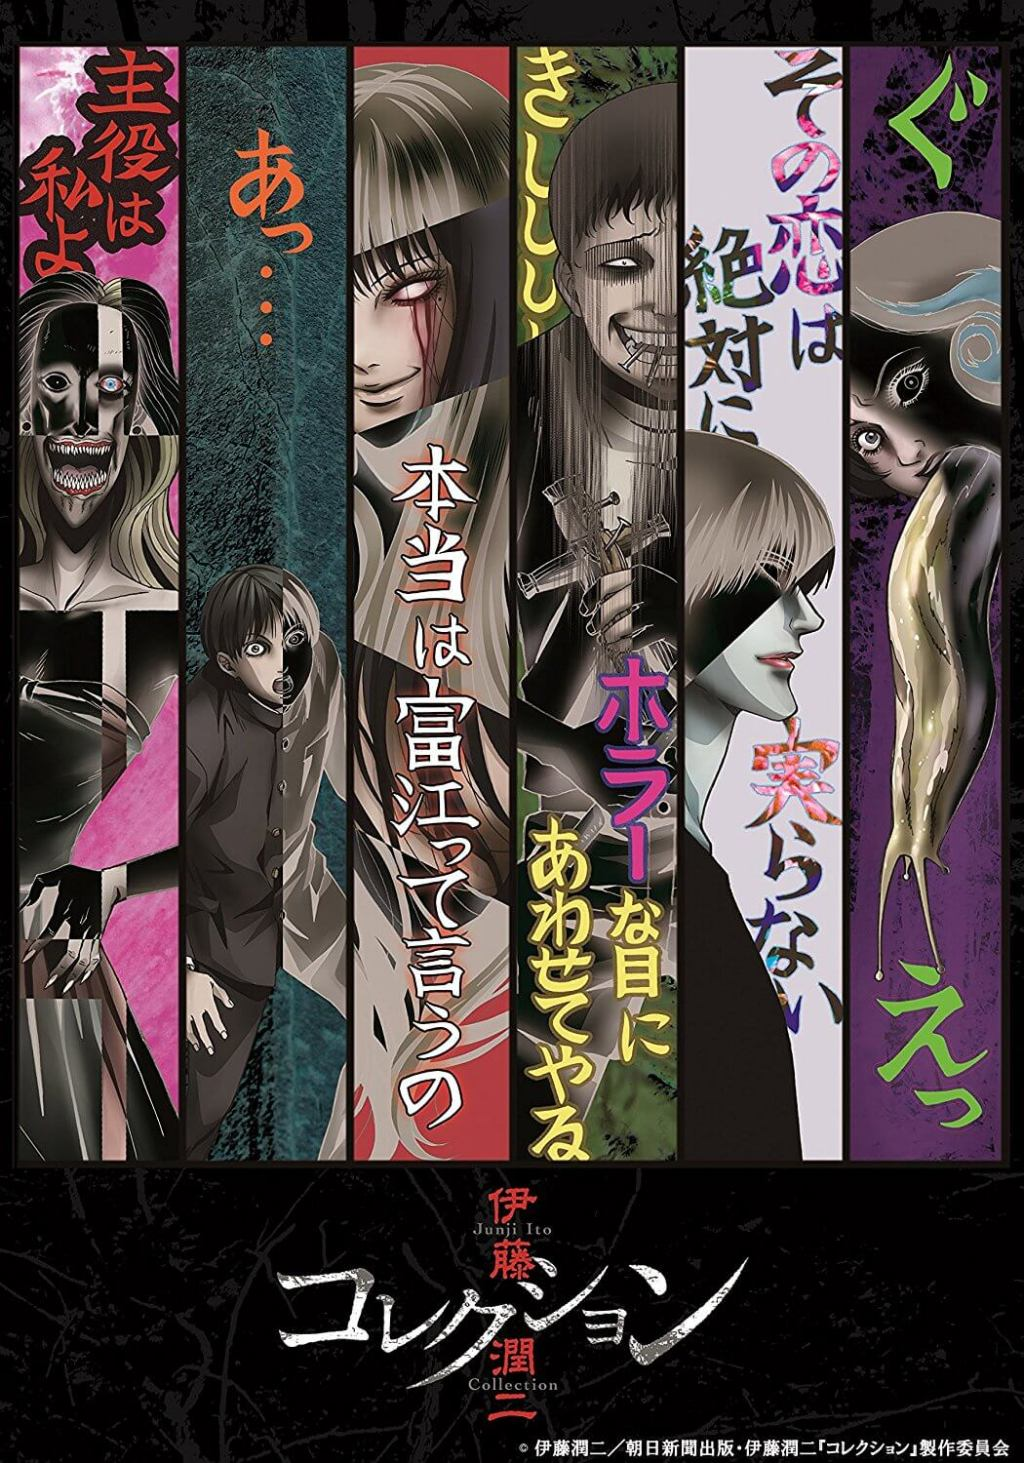 Junji Ito Collection anime to have 12 TV episodes plus 2 OVA episodes